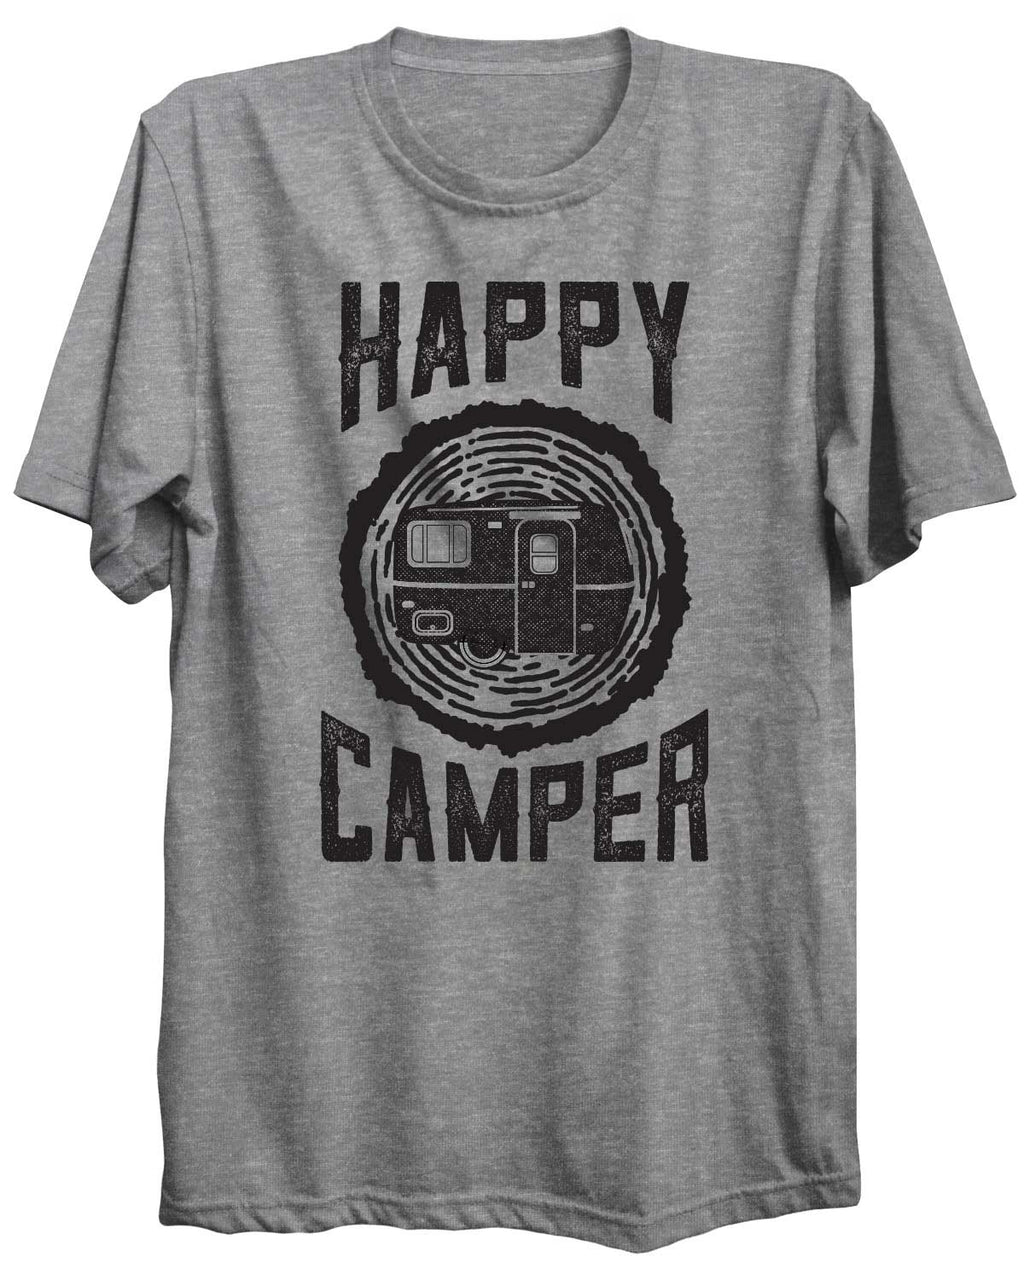 Happy Camper Camping Outdoors Unisex Tshirt